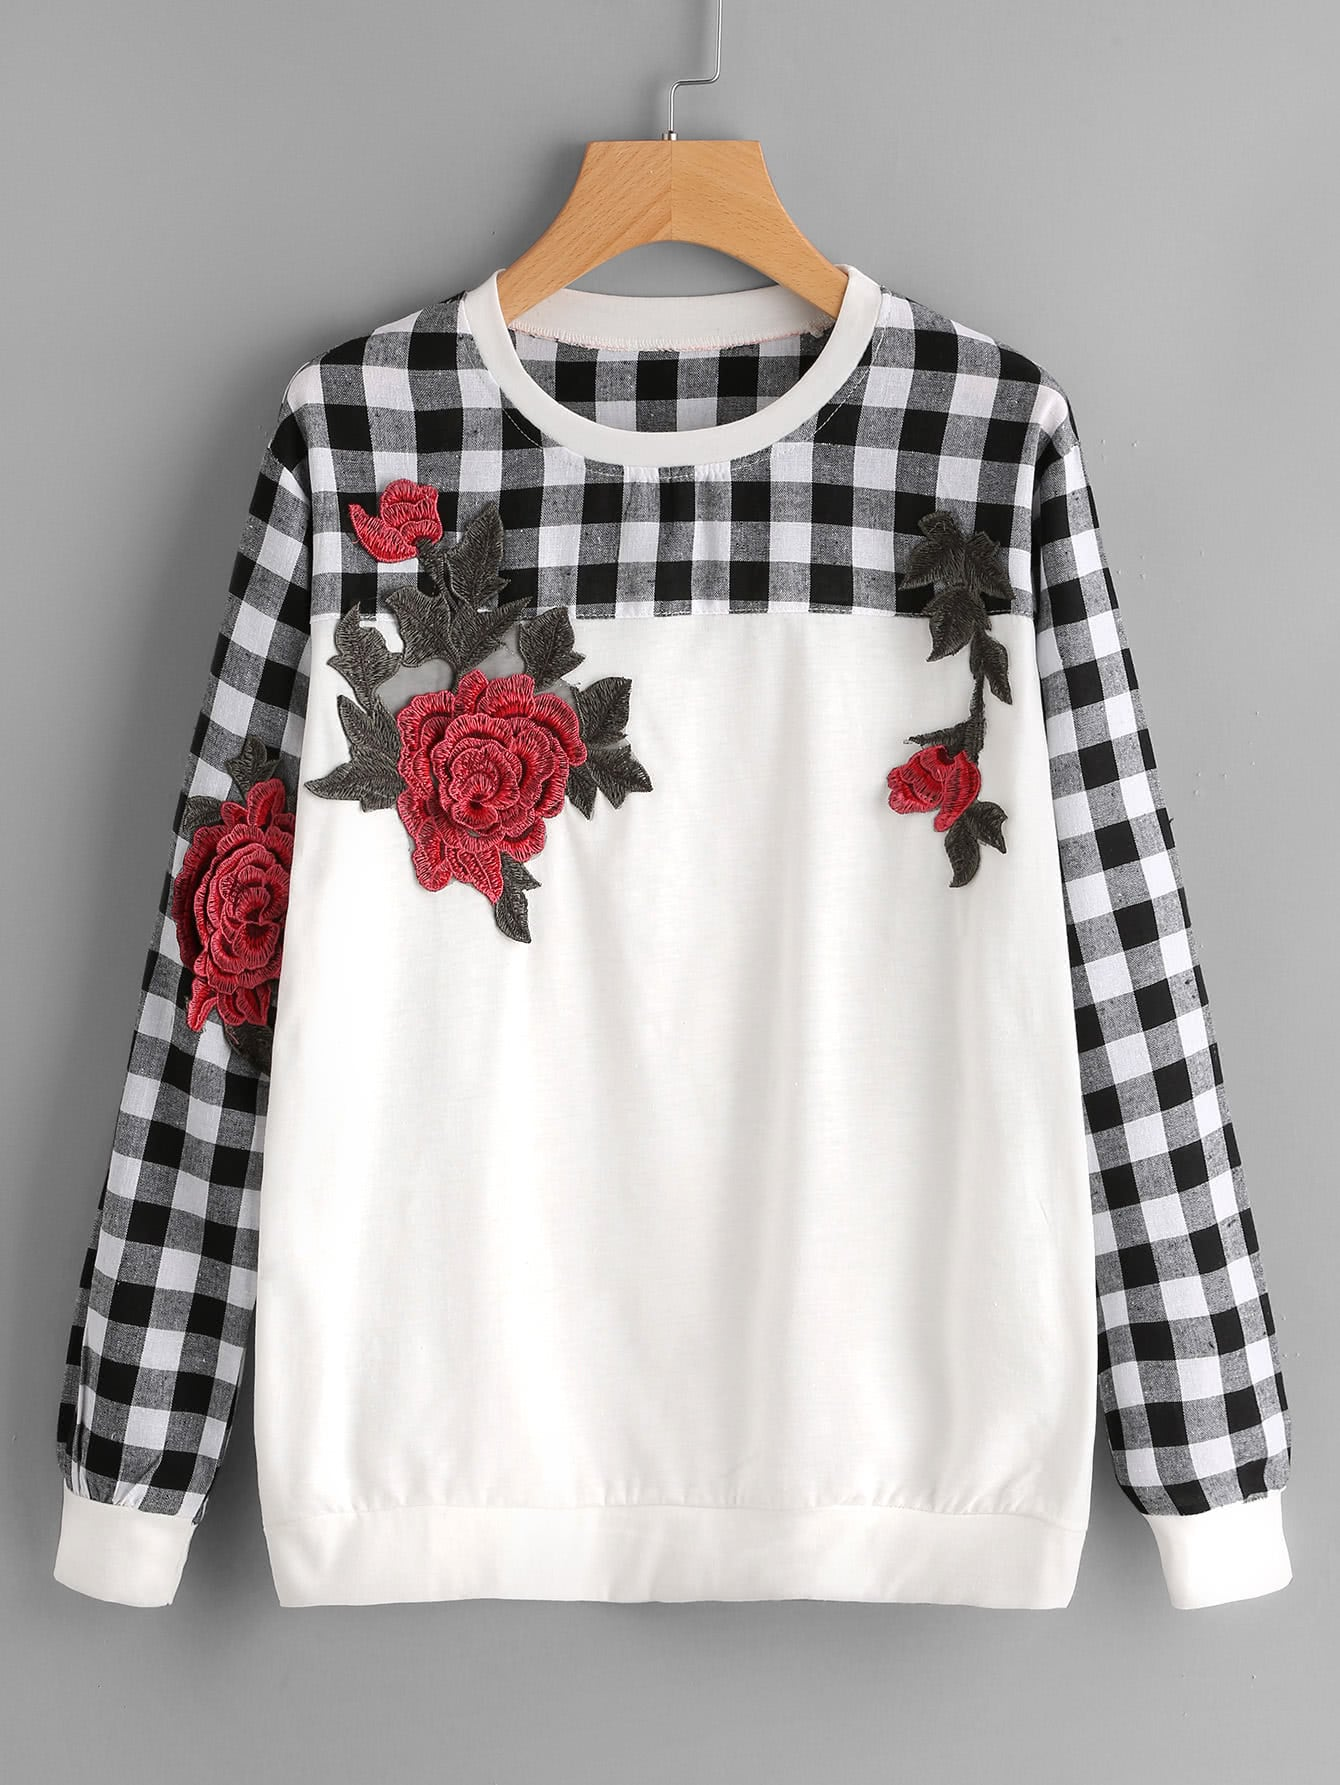 Contrast Check Plaid Embroidered Appliques Sweatshirt contrast check plaid embroidered appliques sweatshirt page 9